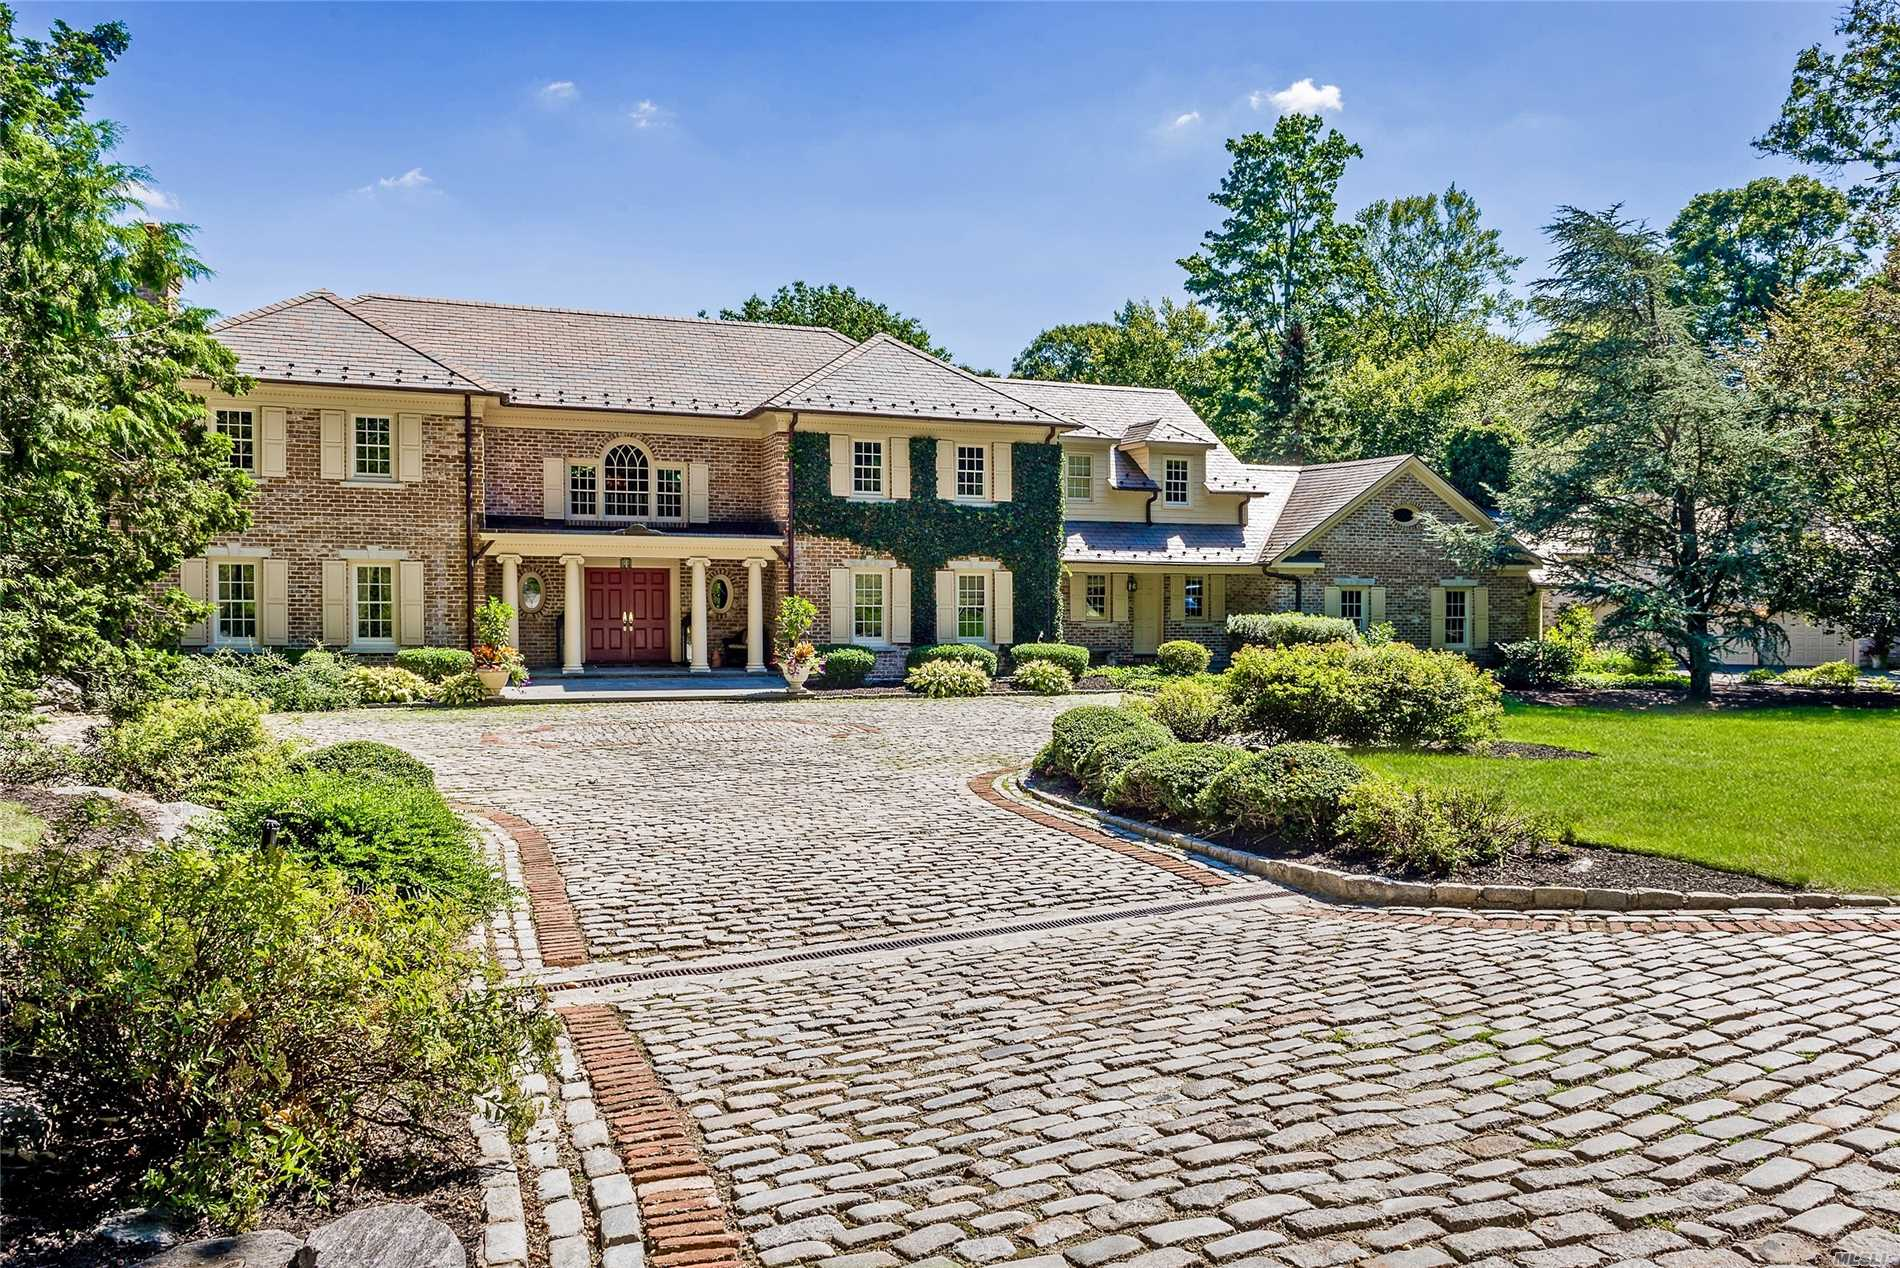 Impressive Gated Entry,Long Drive Leads To Beautiful Brick Manor Home,6900 Sq Ft,Sited On 5 Lush Acres In A Private Yet Convenient Setting.Estate Incl Huge Heated Gunite Pool,Brick Pool House W/Service Bar & Full Bth,Sep Guest Quarters Over 3-Car Gar, & A (Rare) Lighted Har-Tru Tennis Court.Backing To 13 Acres Of Natural Preserve, This Residence Embodies The Elegance That Makes Matinecock So Desirable. Classic Architecture Yet Unique,With 9' Ceilings,Radiant Heat,4 Fpl, See Update List!